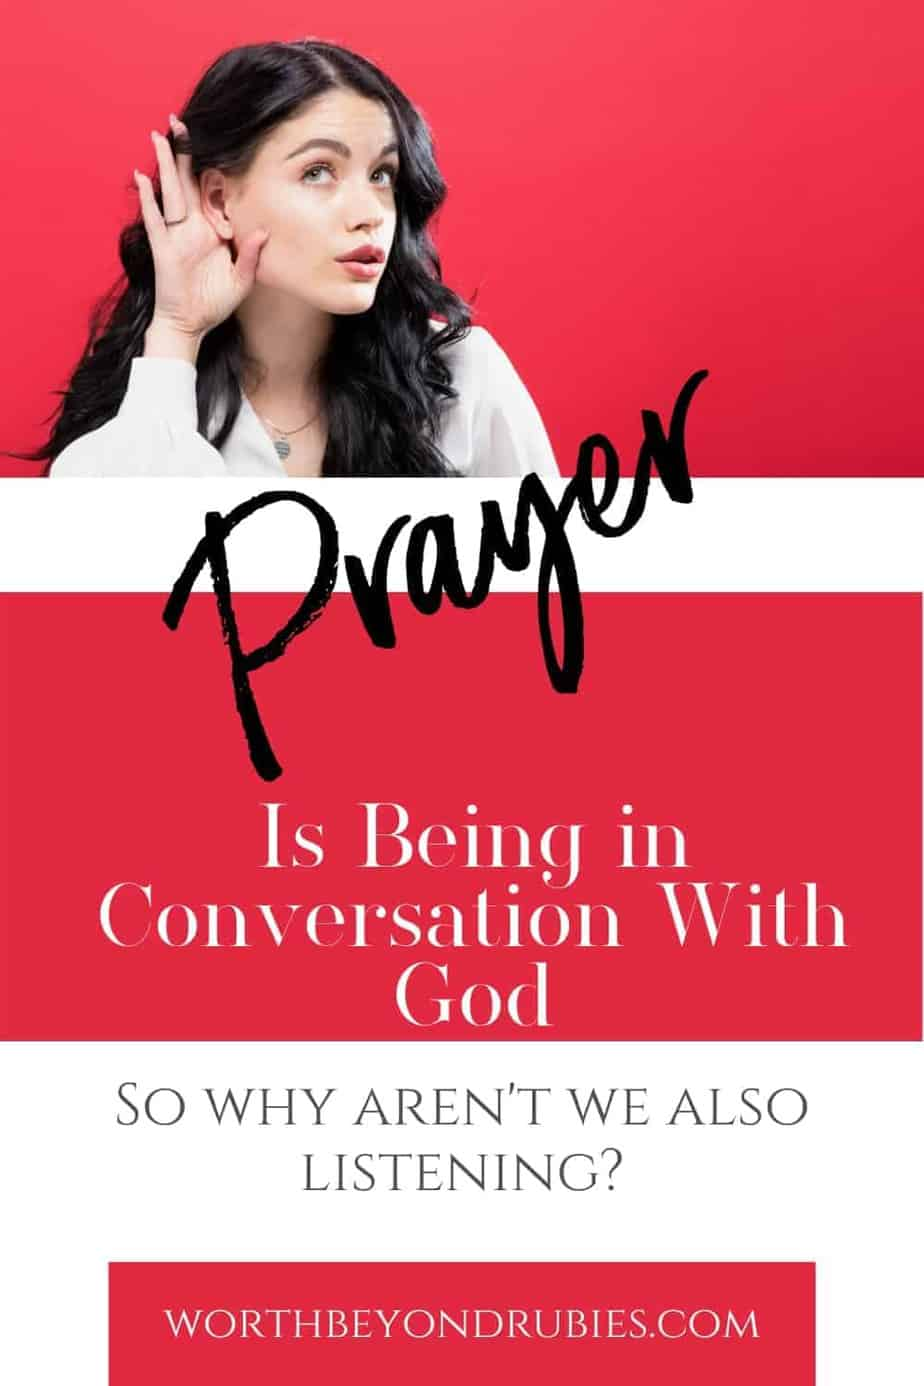 An image of a woman with long dark hair against a red background, holding her hand up to her ear like she is trying to hear something - a text overlay that says Prayer is Being in Conversation With God - So Why Aren't We Listening?